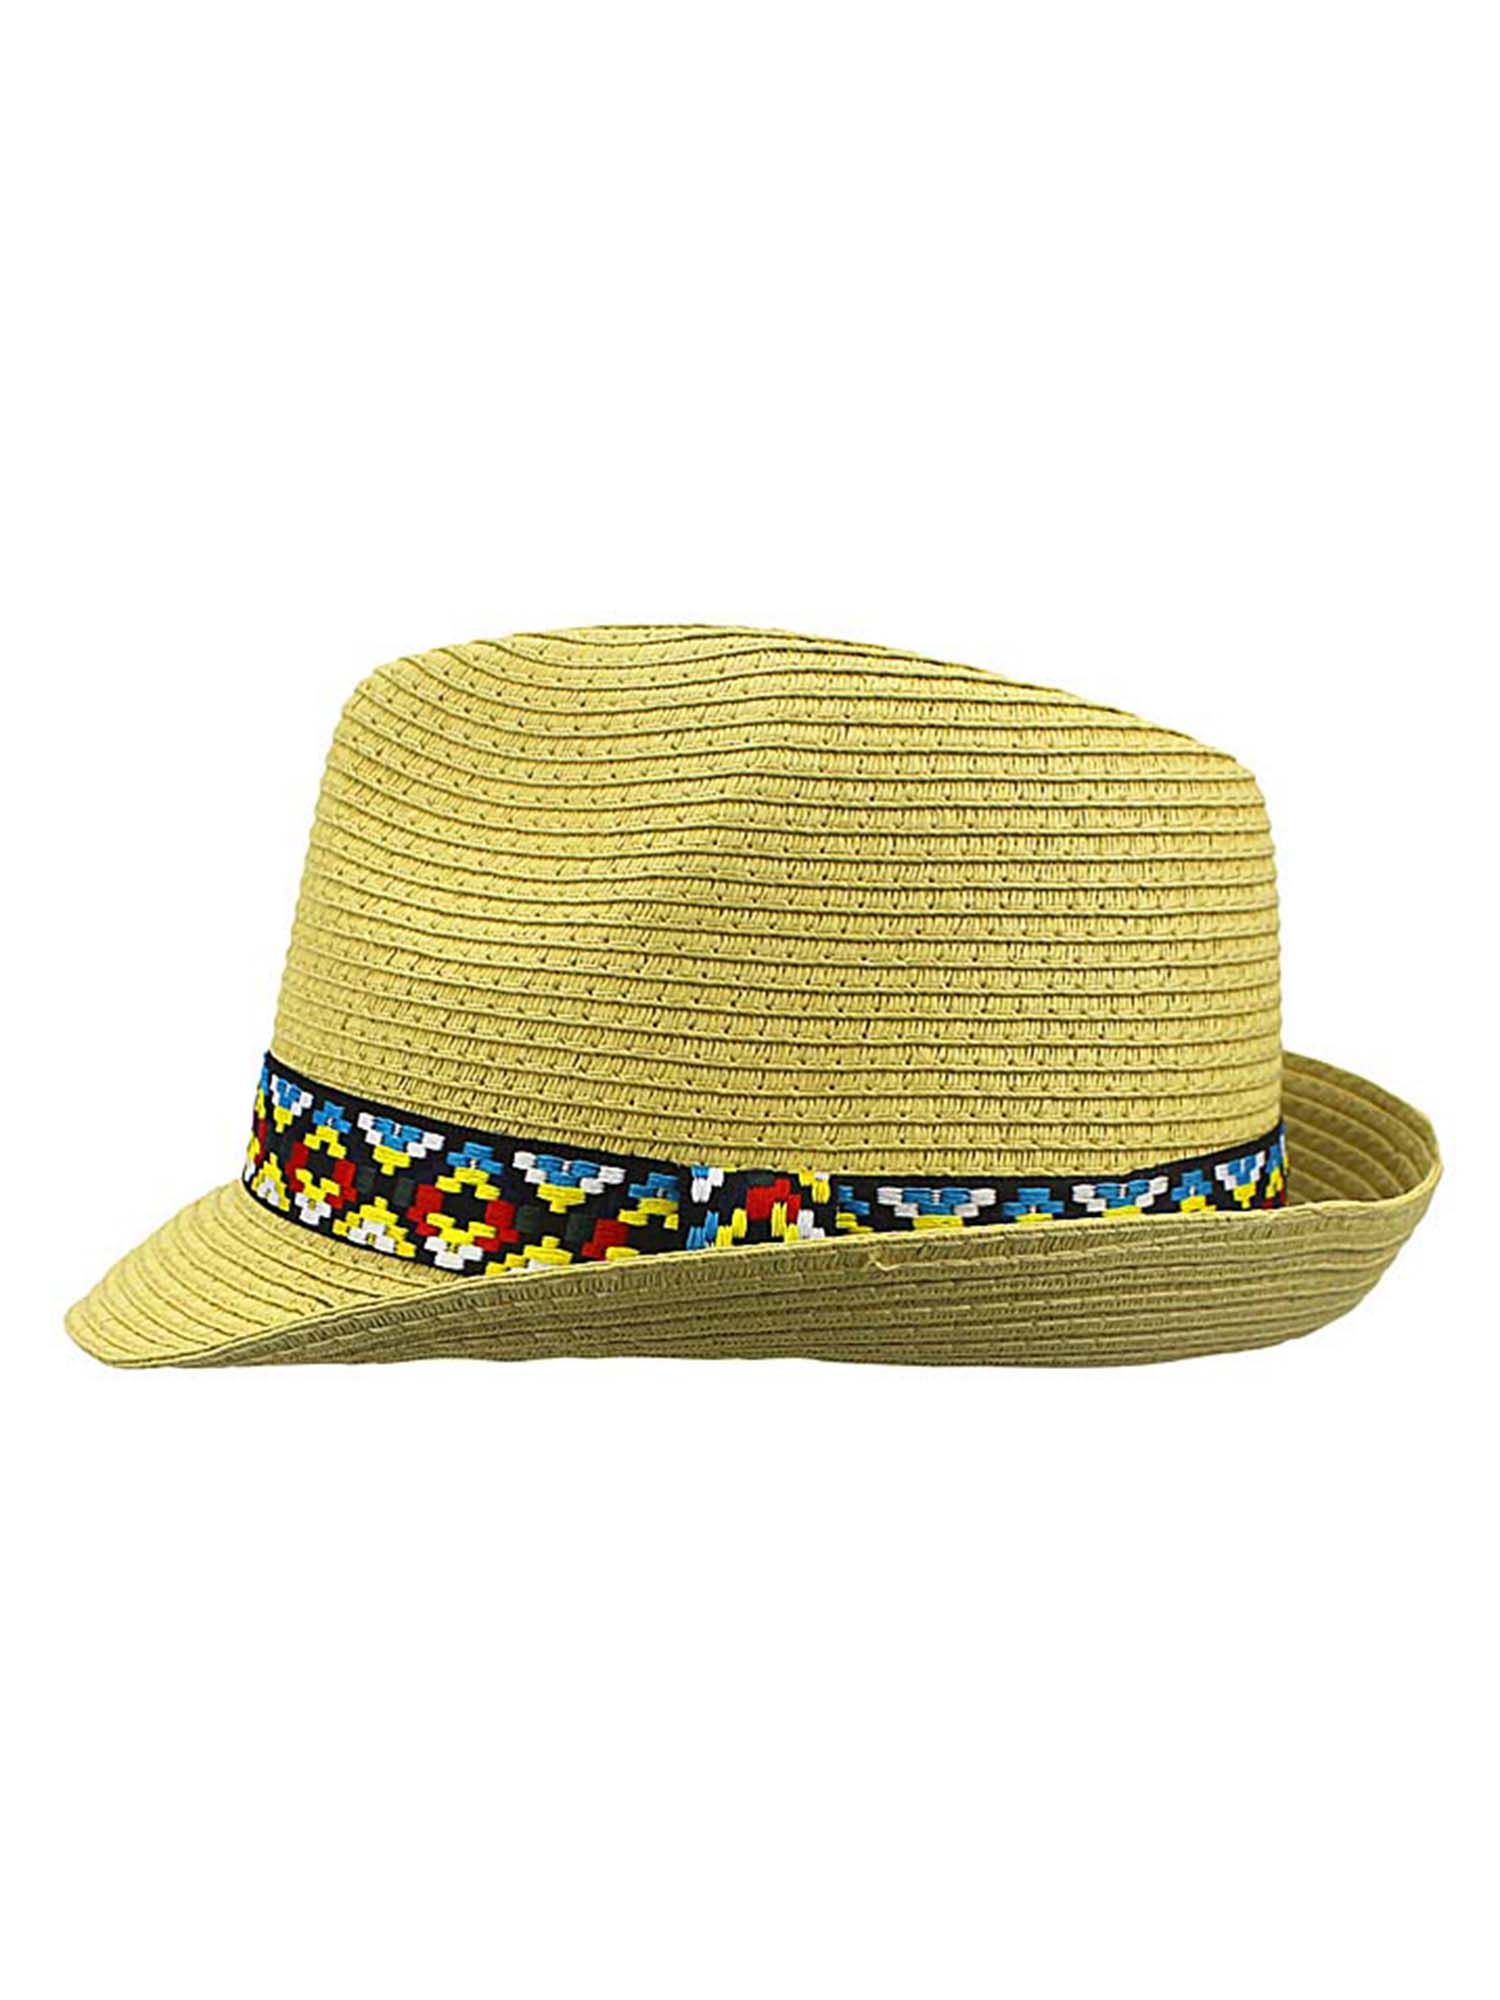 3745440f0 WOVEN STRAW FEDORA HAT WITH AZTEC BAND